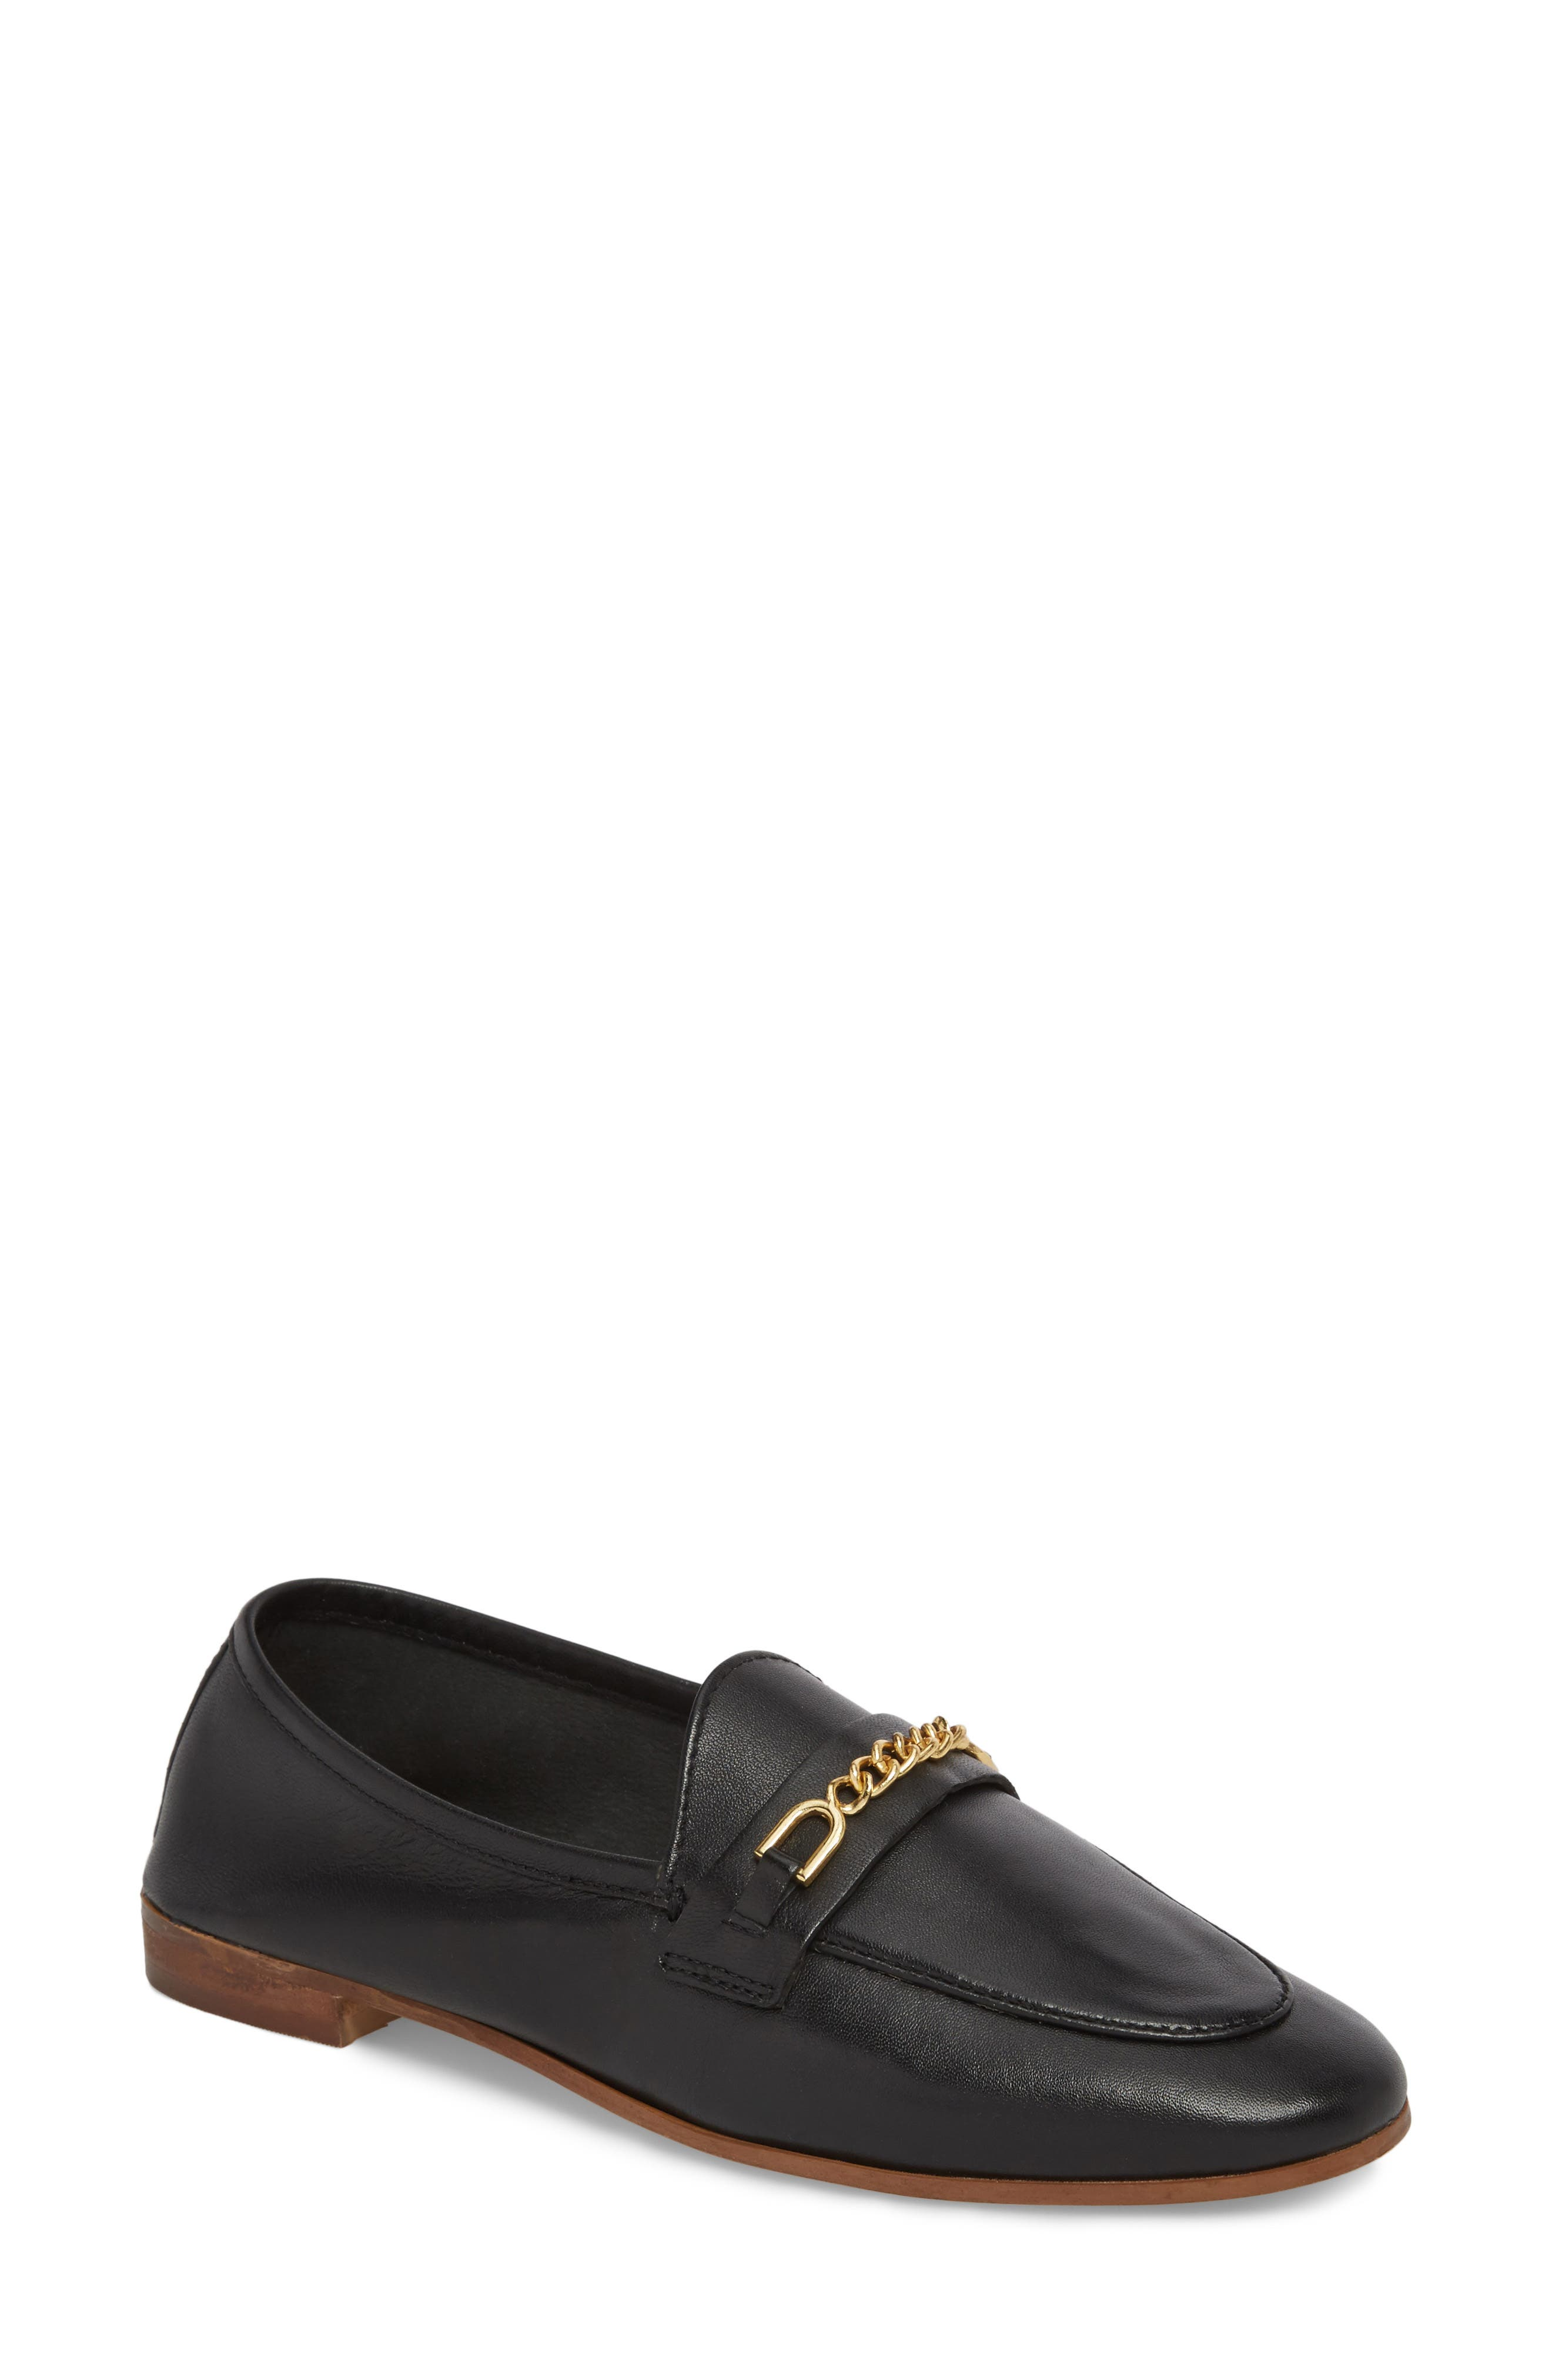 Topshop Key Trim Chain Loafer (Women)